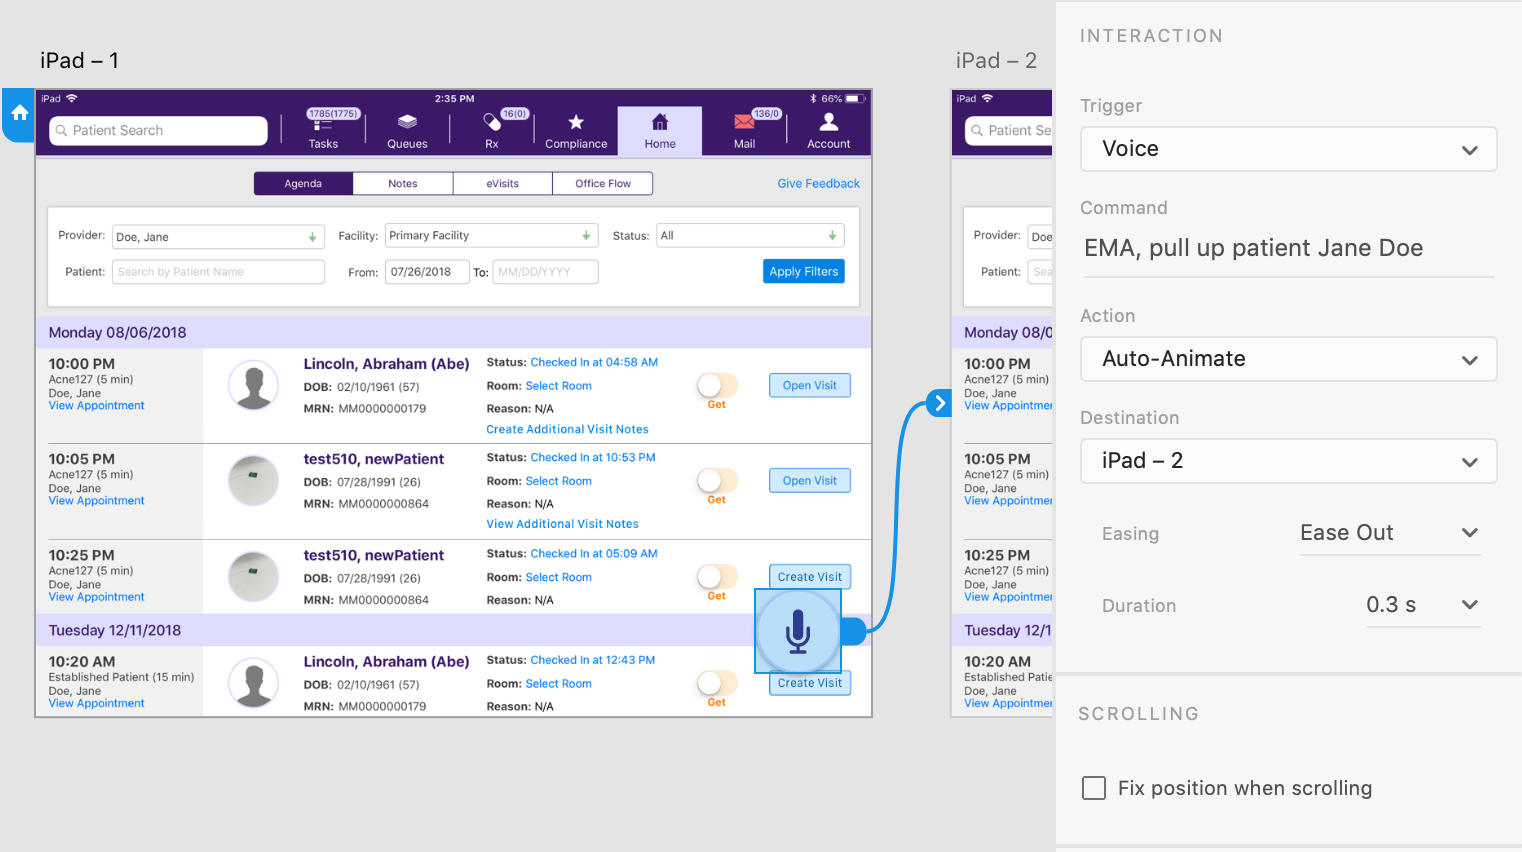 Screenshot of setting up voice triggers and commands using Adobe XD